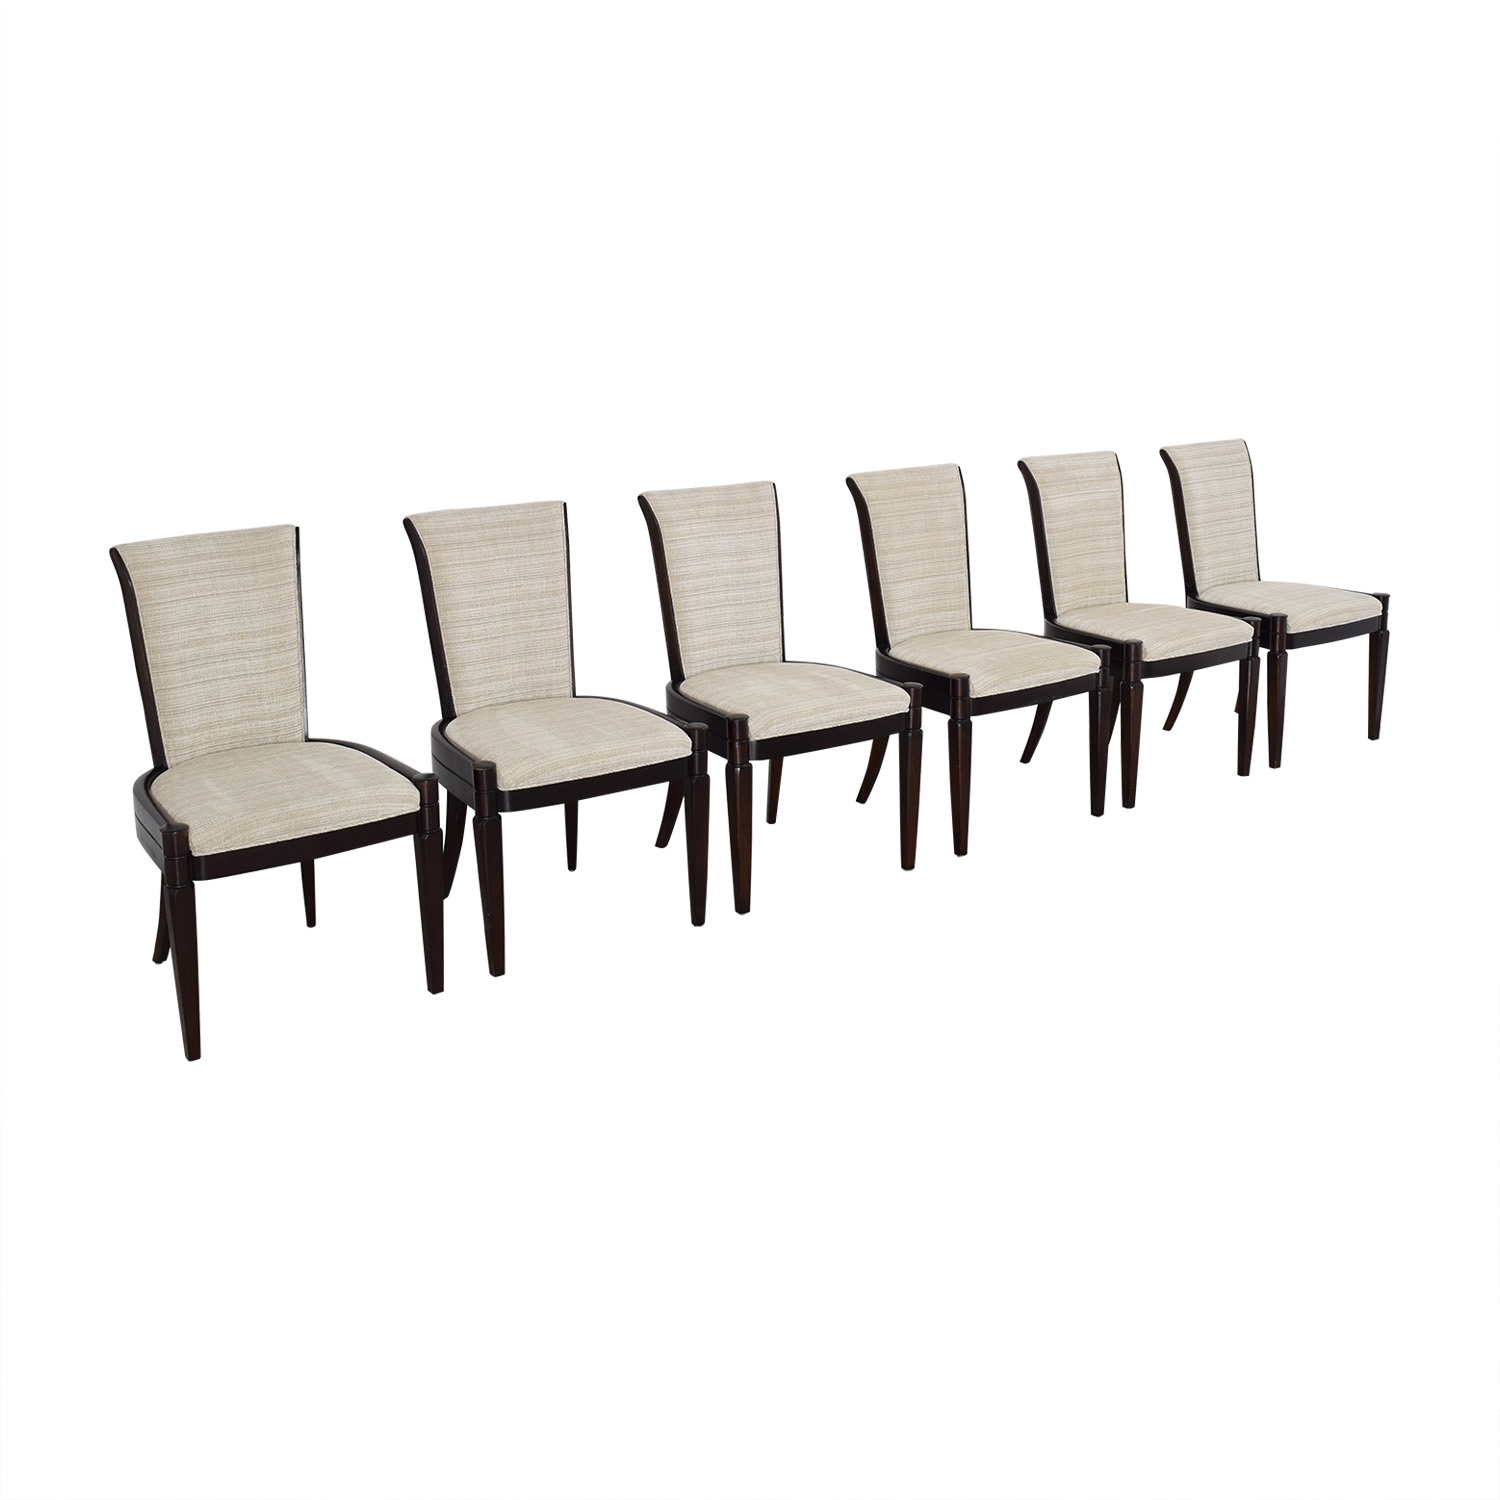 Century Furniture Century Furniture Upholstered Dining Chairs on sale